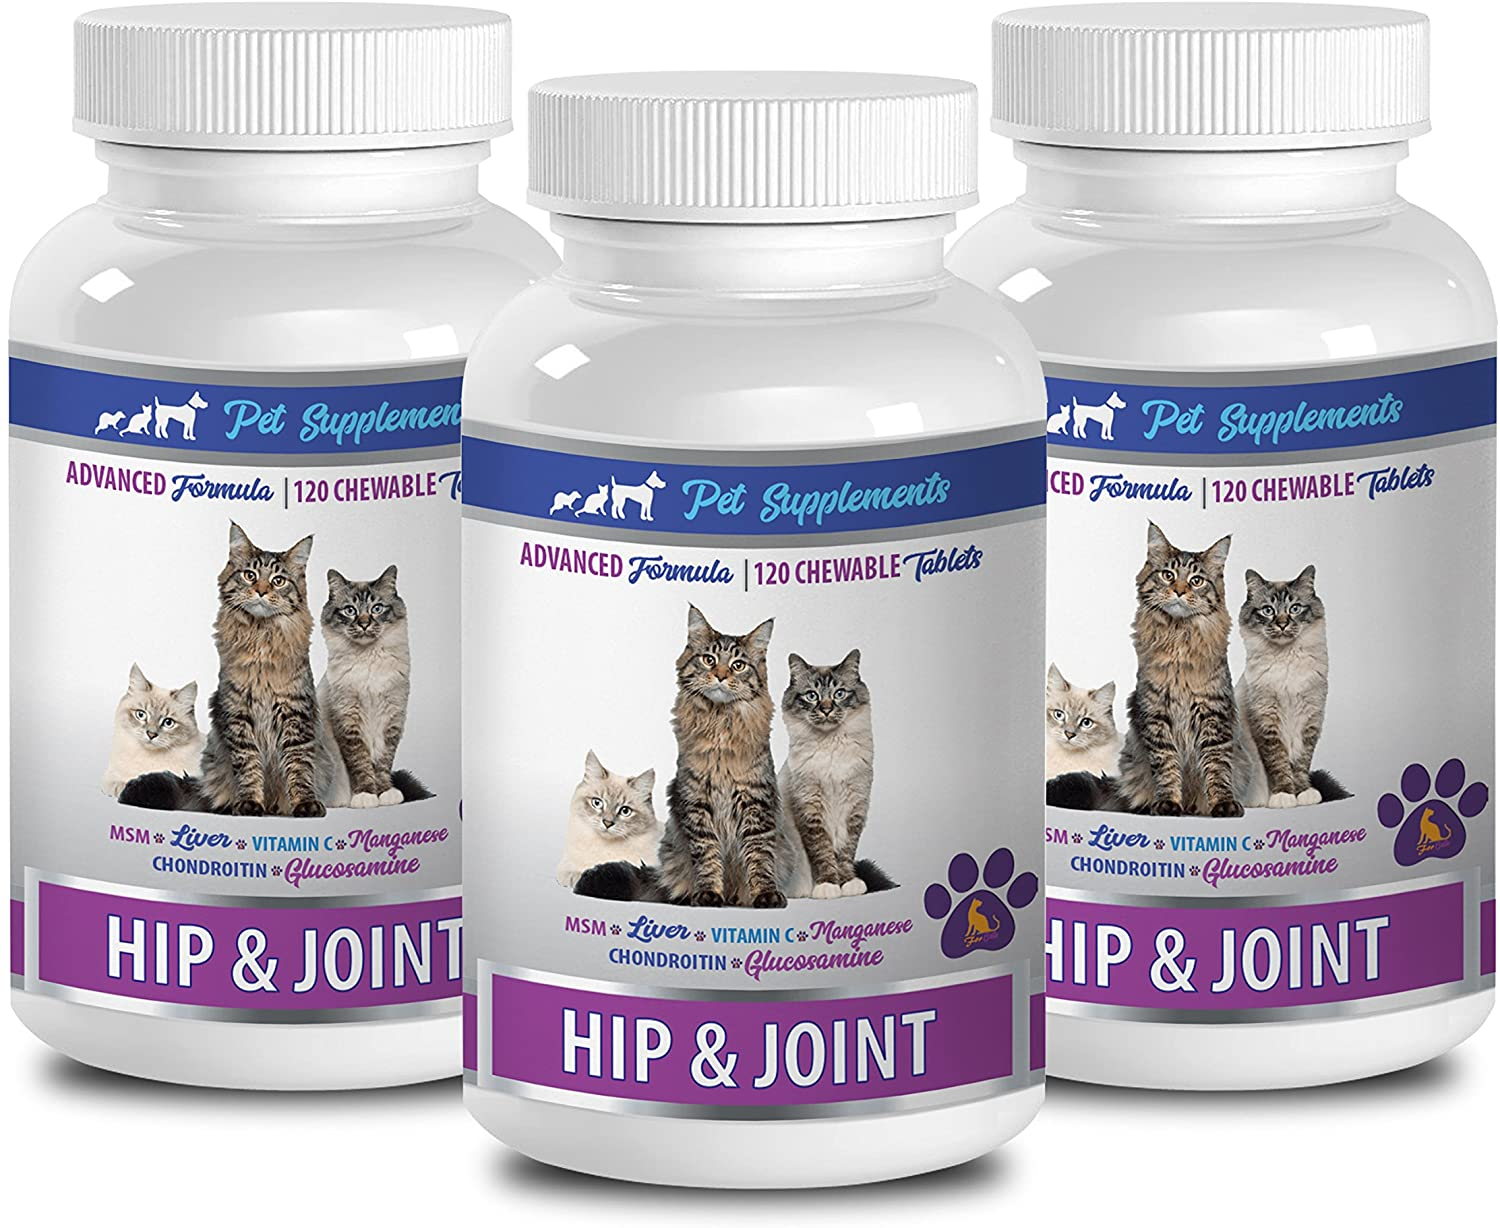 cat immune system support - HIP AND JOINT - FOR CATS - HEALTH AND CARE - CHEWABLE - cat joint supplements - 3 Bottle (360 Chews)